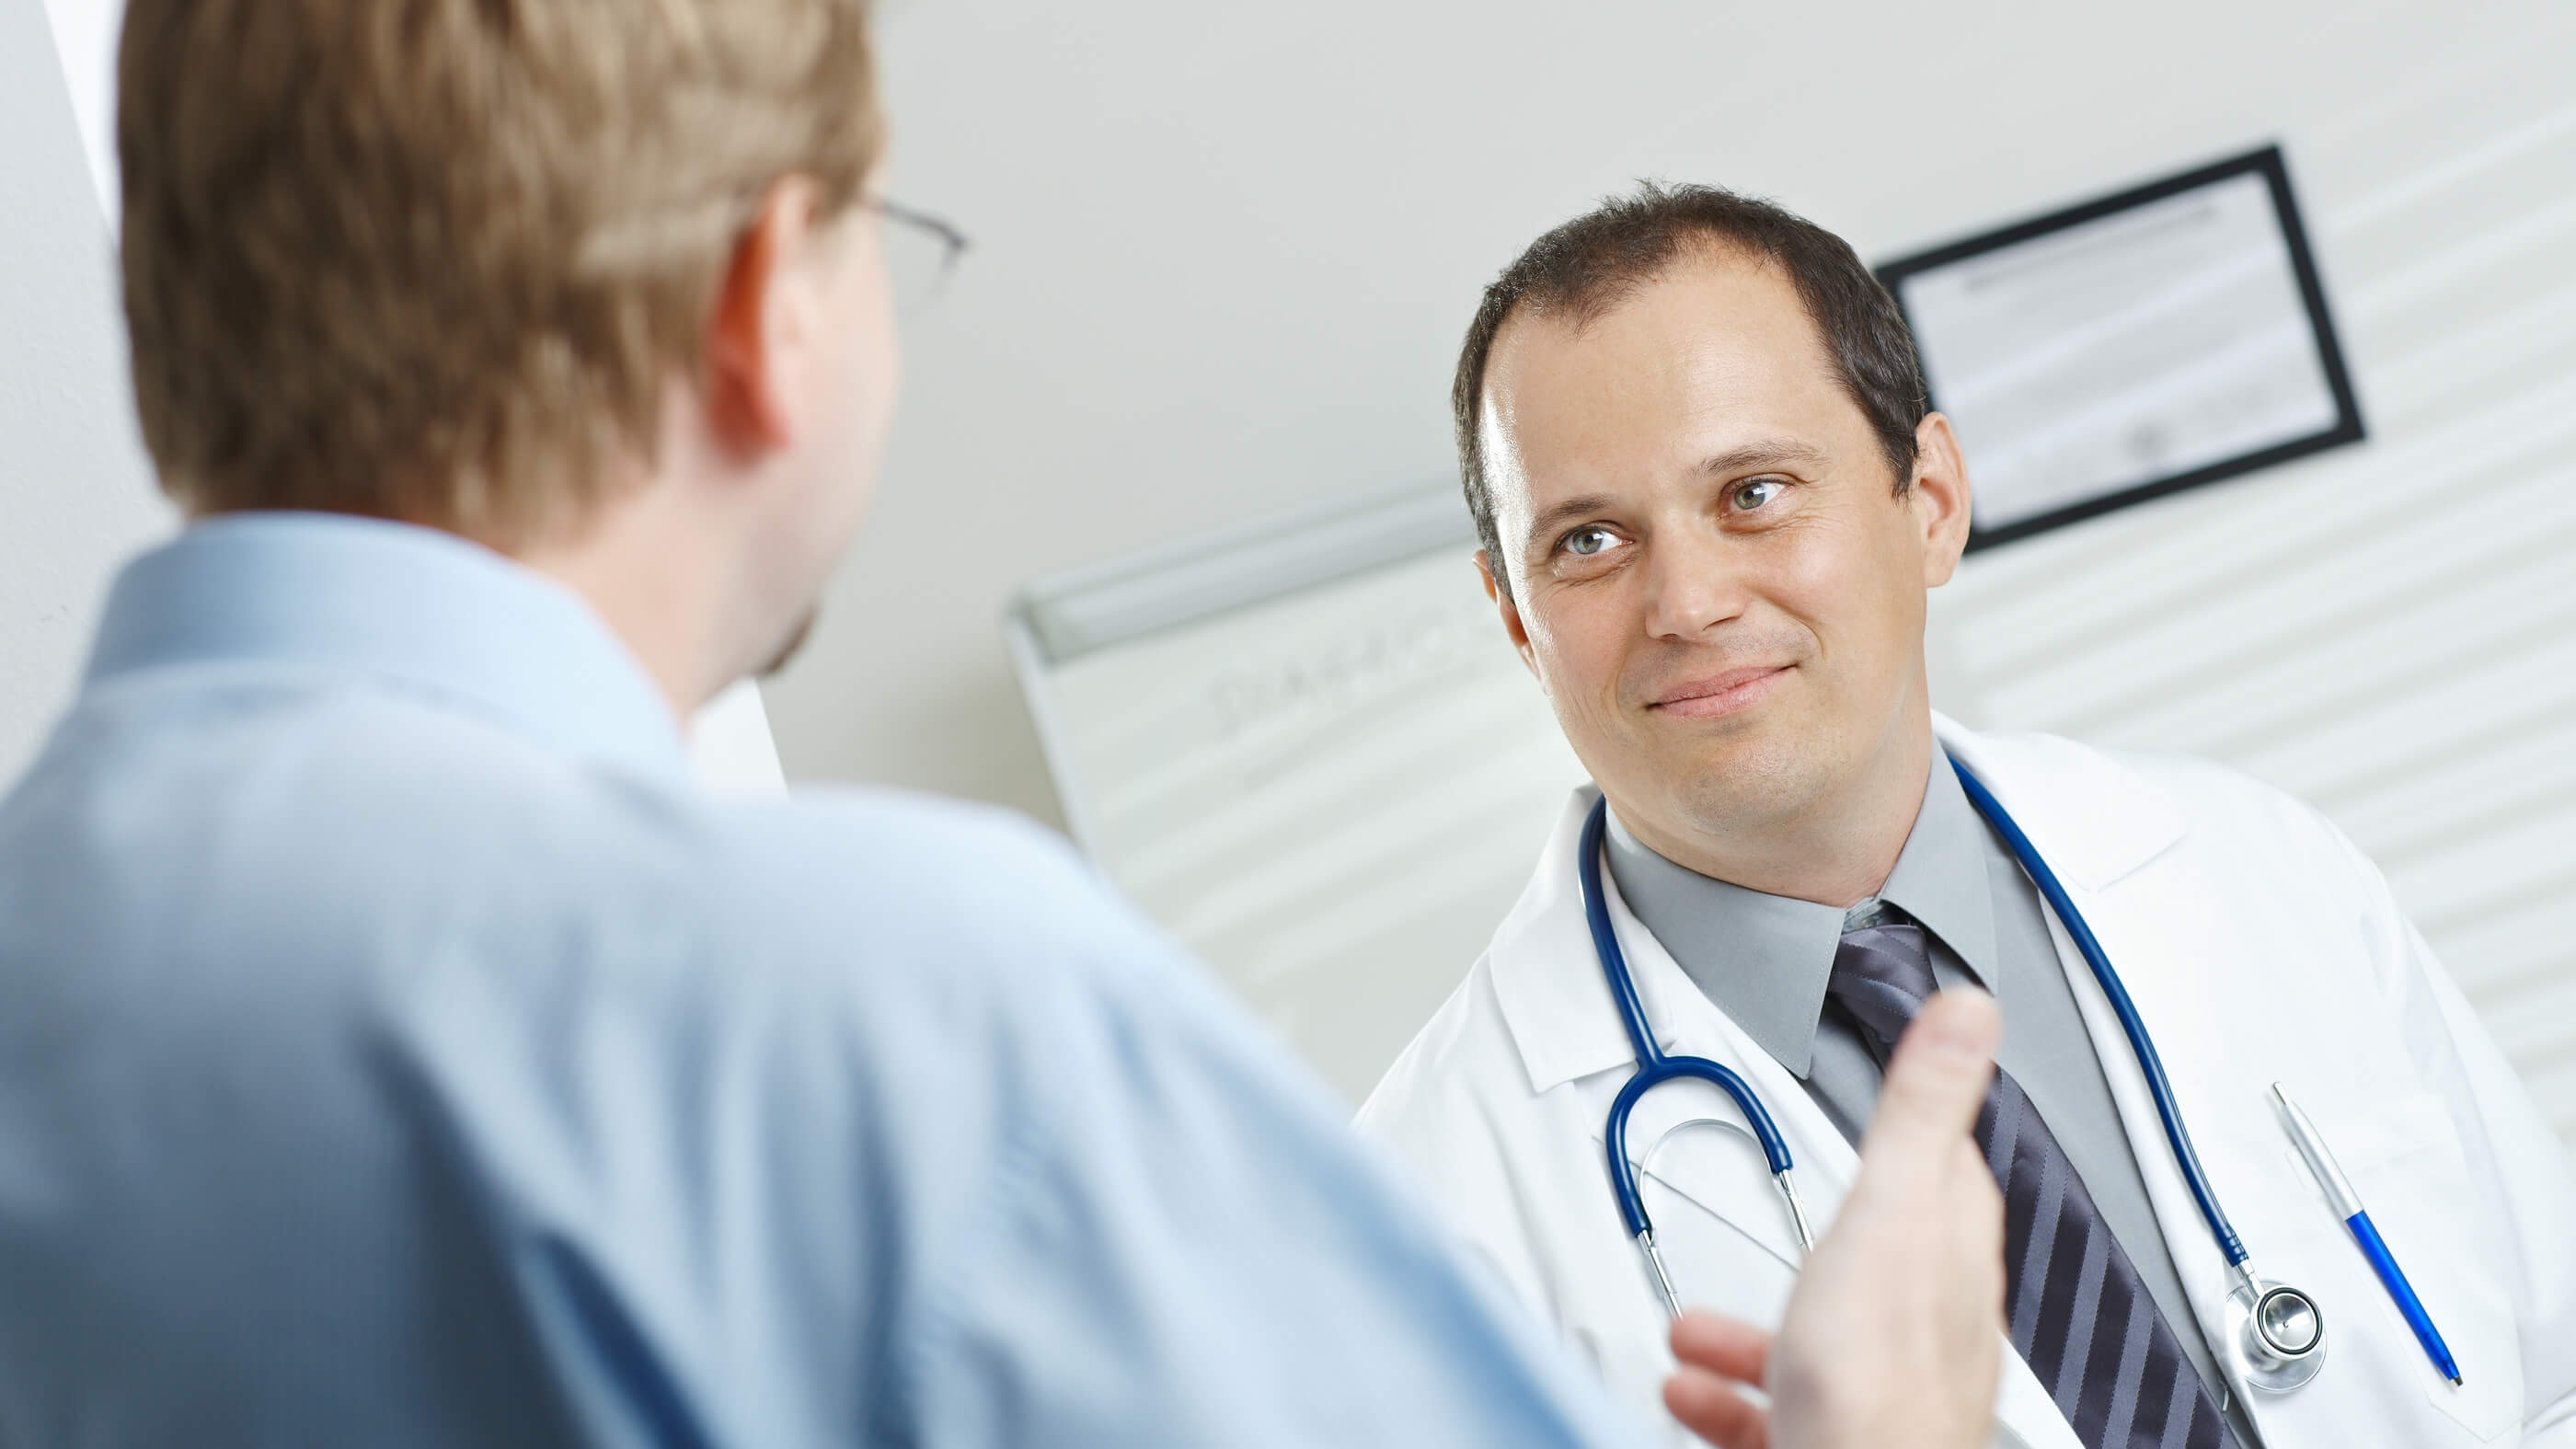 Tips for Having a Productive Doctor's Appointment